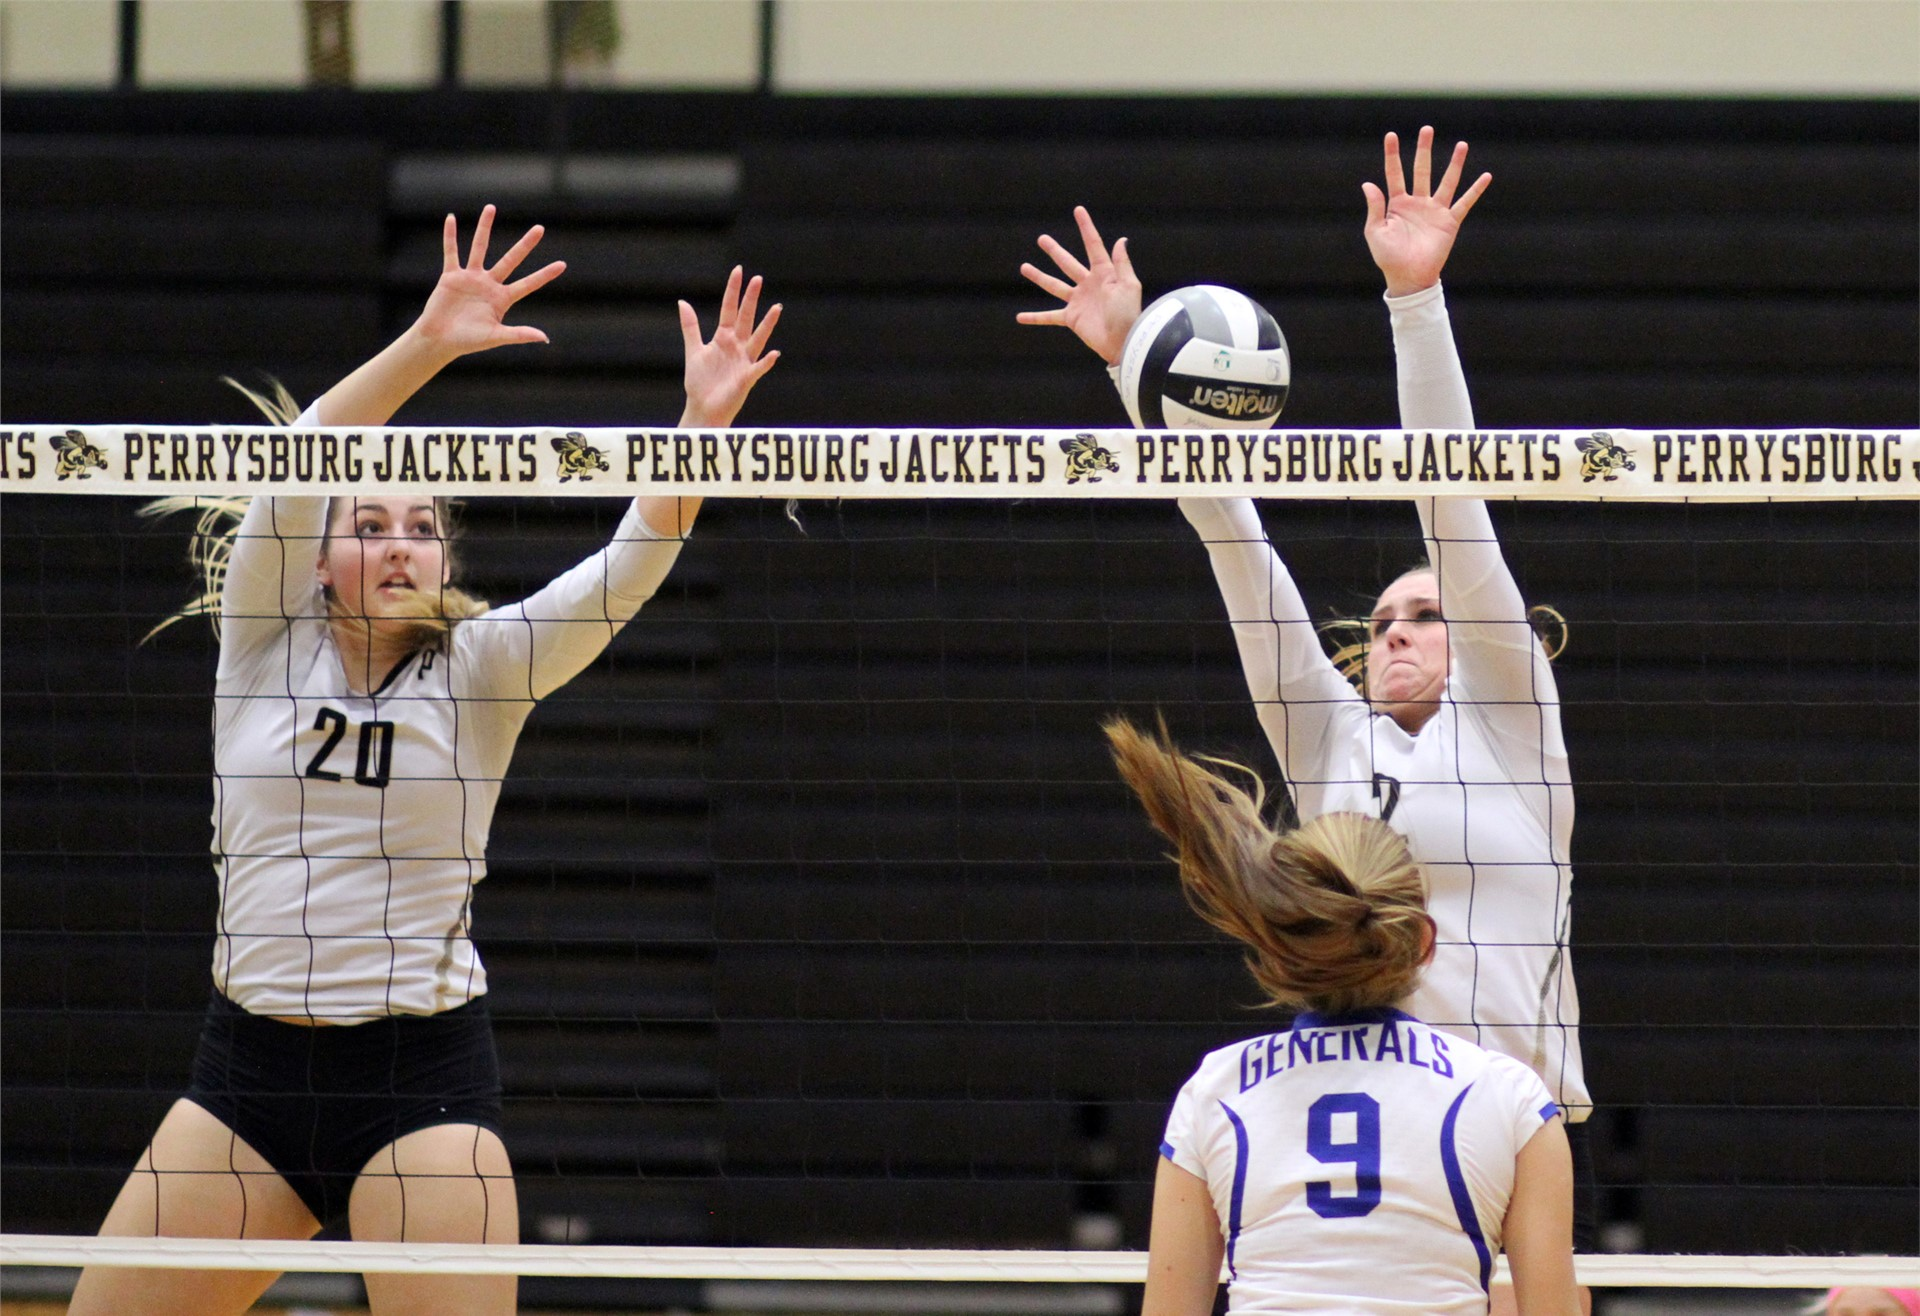 PHS volleyball players attempting to block a shot